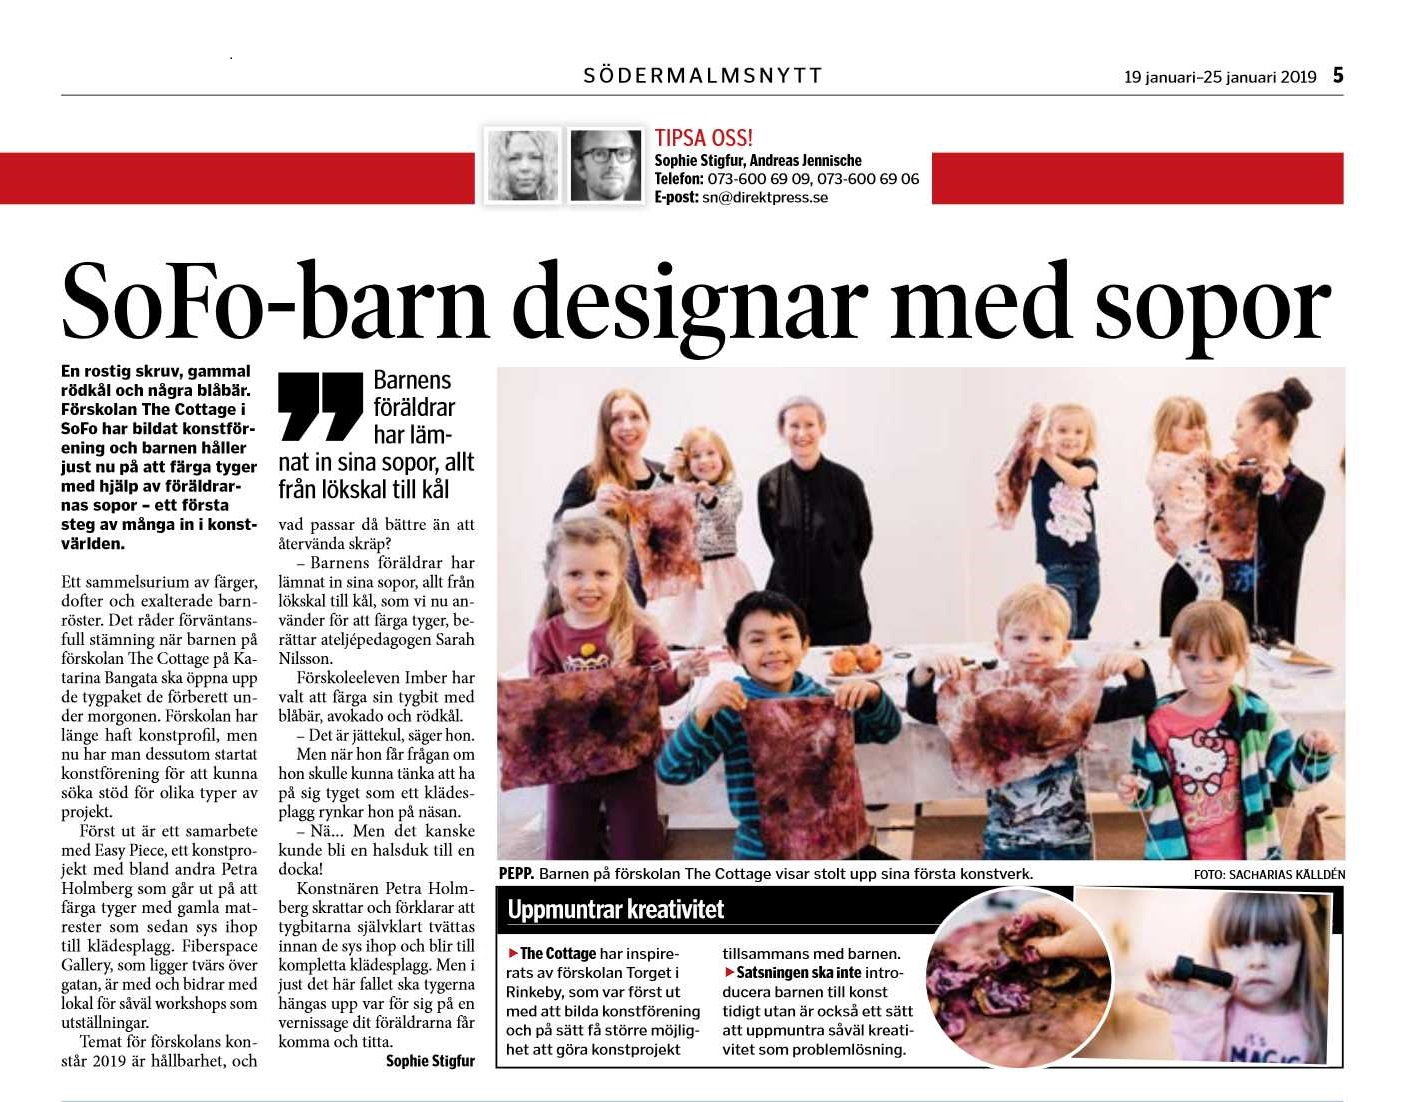 Södermalmsnytt 18 jan 2019 - artikel Easy Piece The Cottage Fiberspace slow creations.jpg